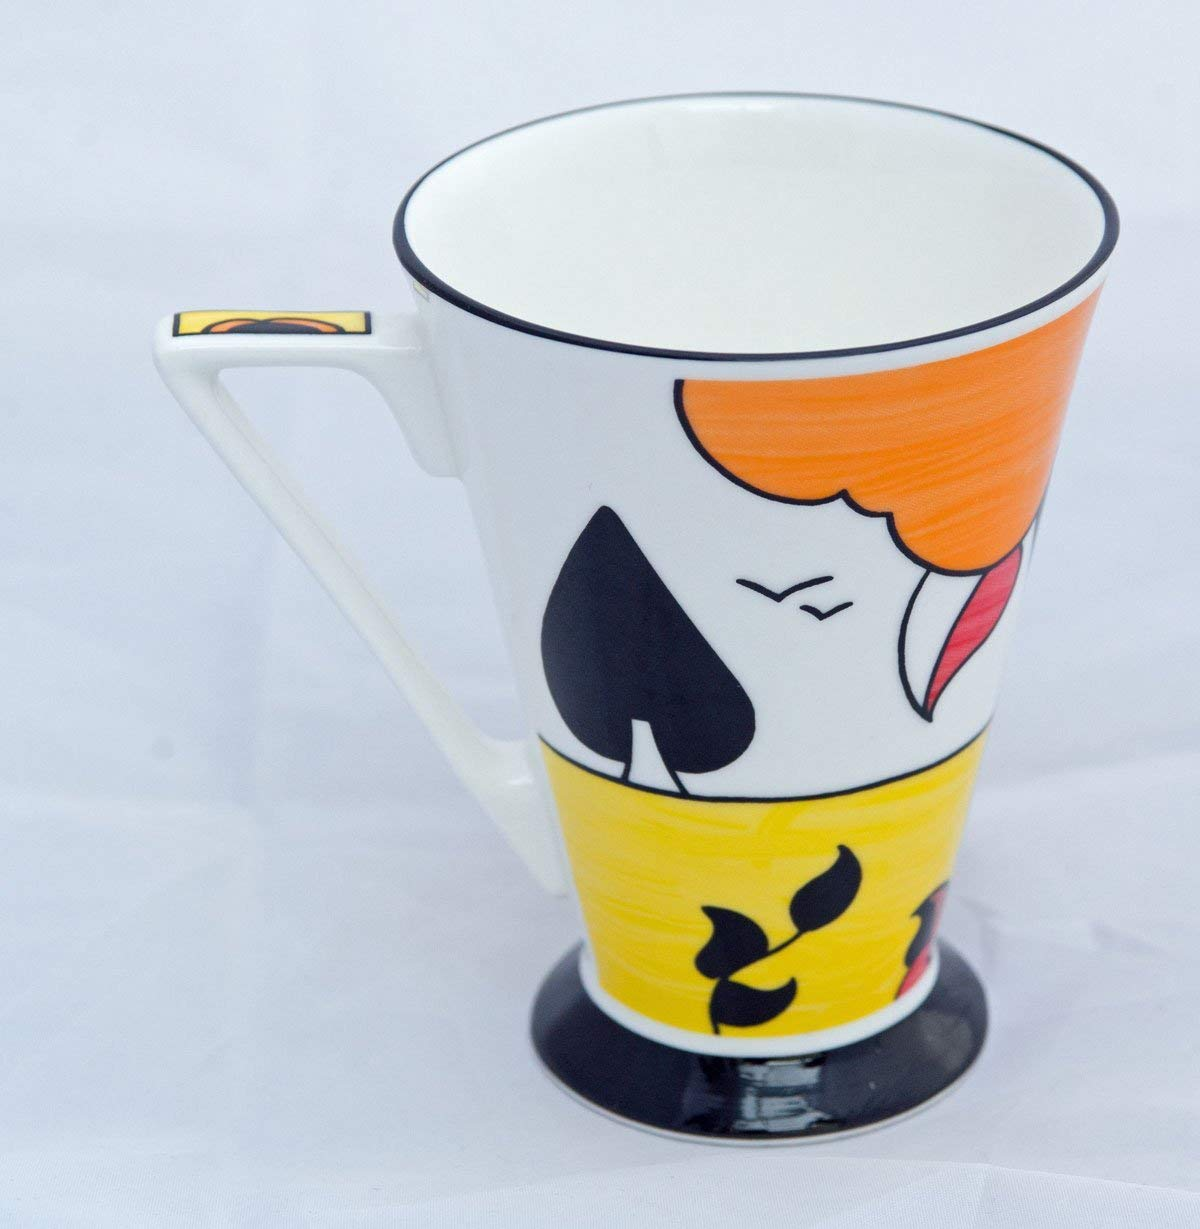 Delightful Pair Of Art Deco Style Fine Bone China Mugs From The Chris Rogers Originals Collection Buy Online In India At Desertcart In Productid 52988029